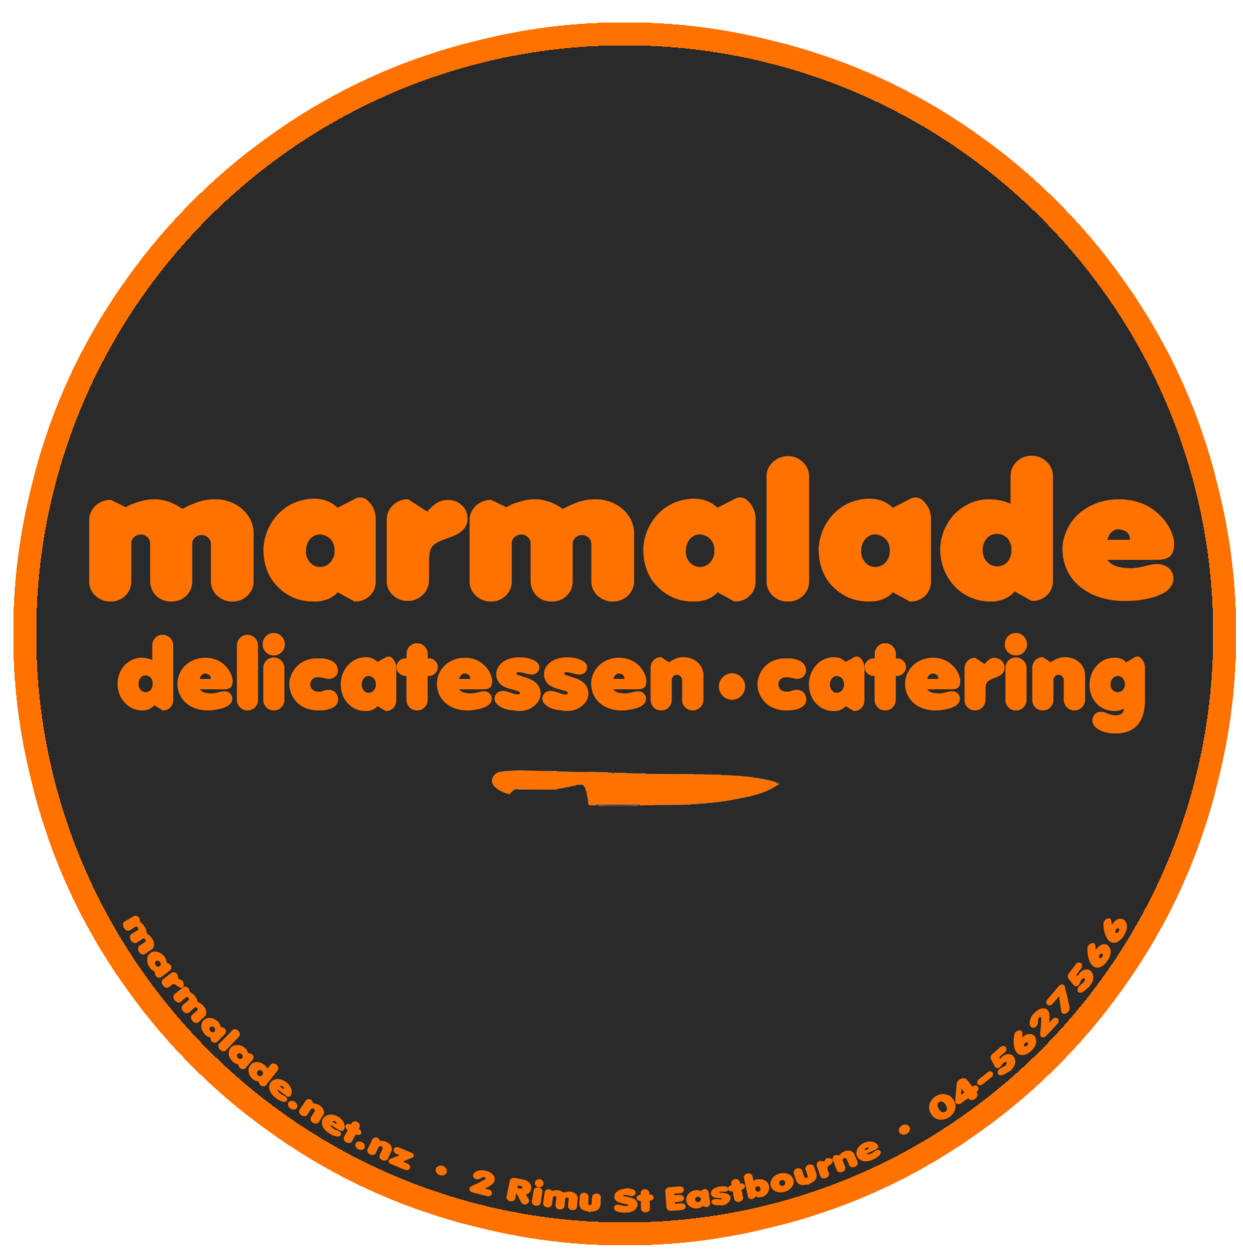 Marmalade Delicatessen & Catering, Eastbourne, Lower Hutt, Wellington, Cycle Remutaka